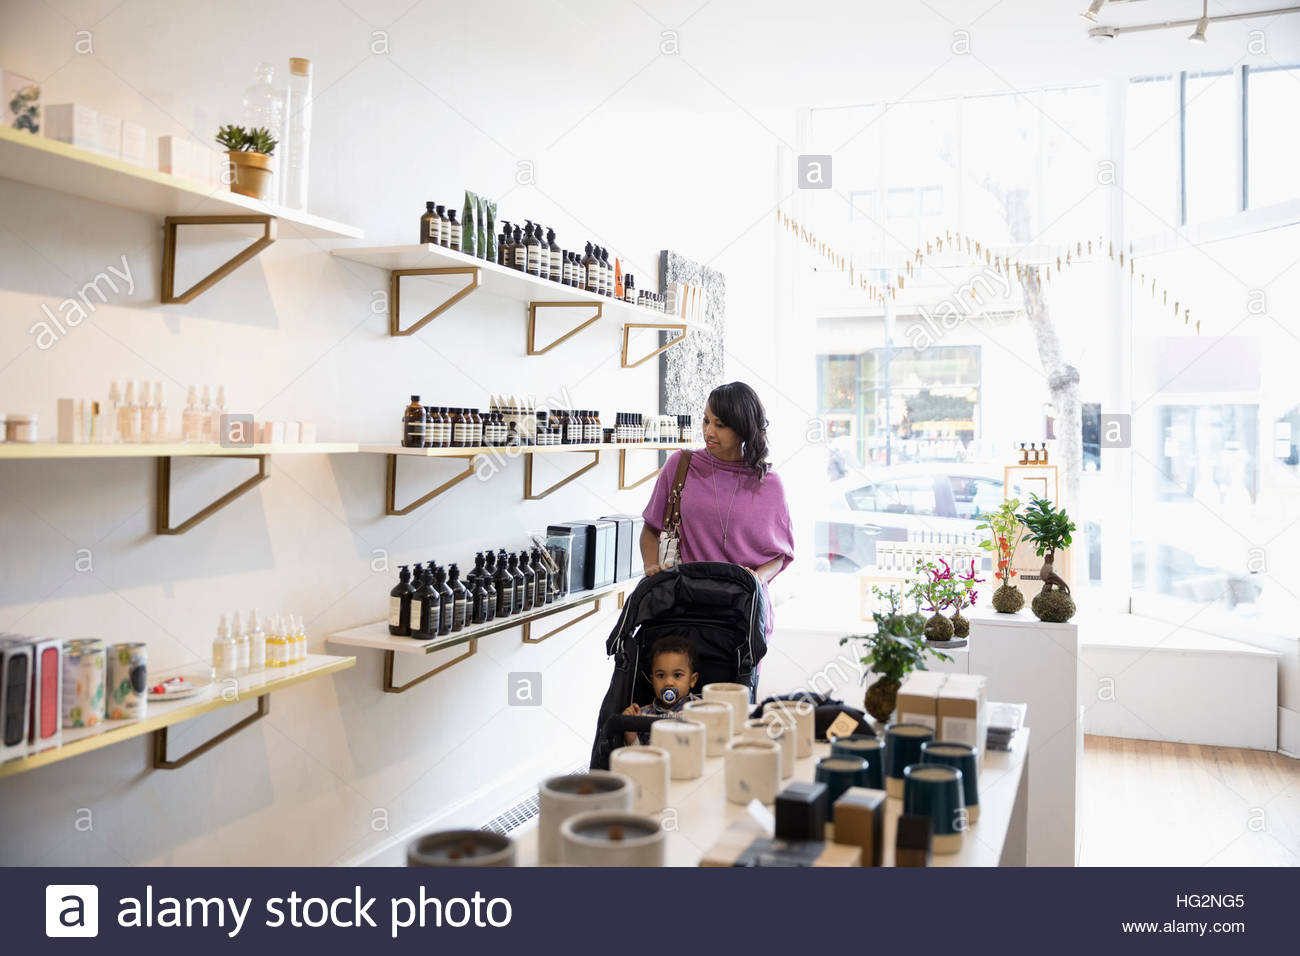 Mother and son shopping browsing merchandise on shelves in home fragrances shop - Stock Image